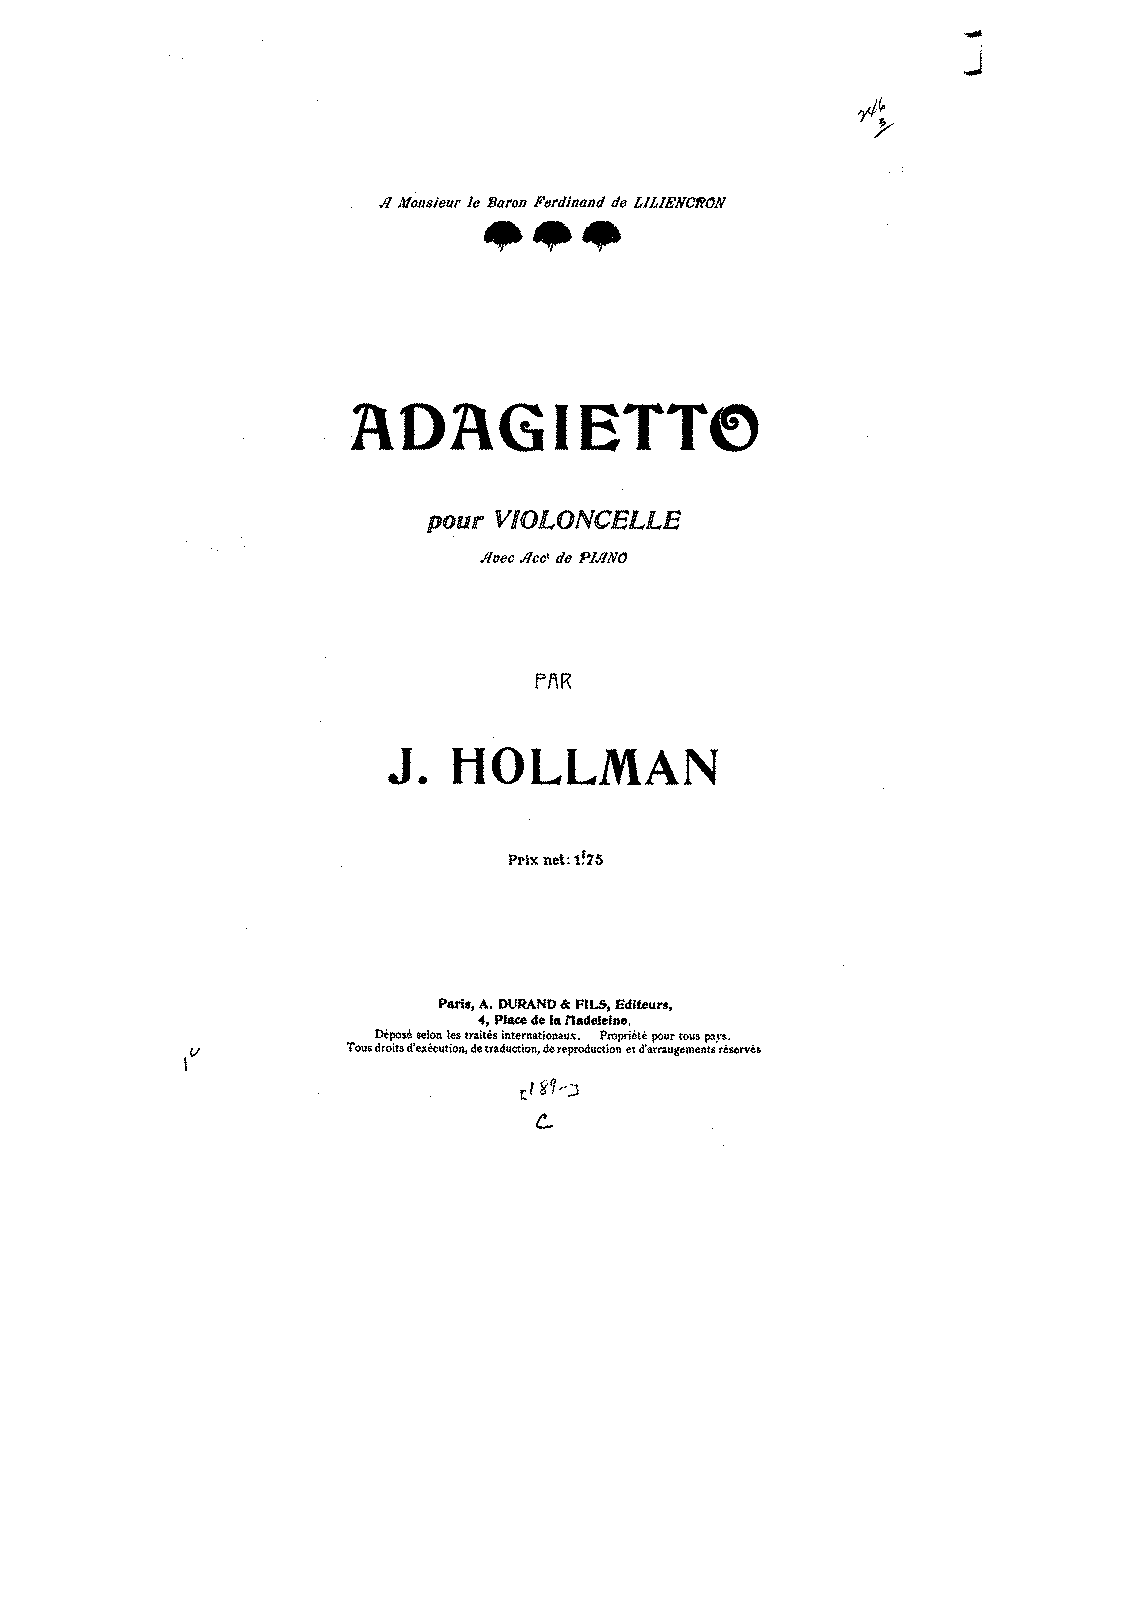 PMLP305730-Hollman - Adagietto for Cello and Piano pno.pdf